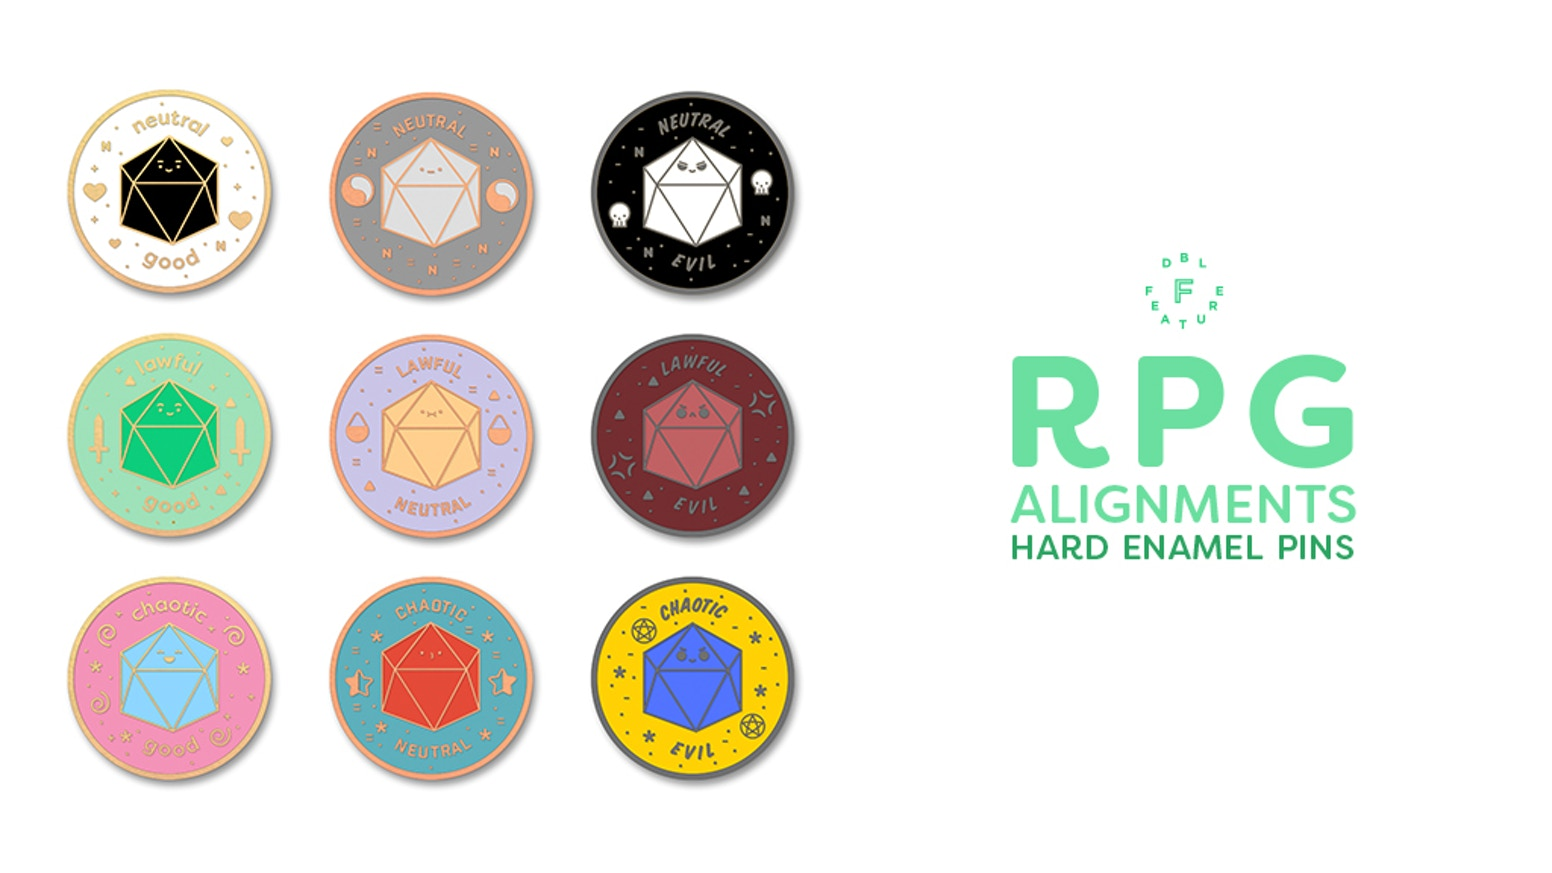 Represent your chosen character alignment with our RPG Alignments Hard Enamel Pins!